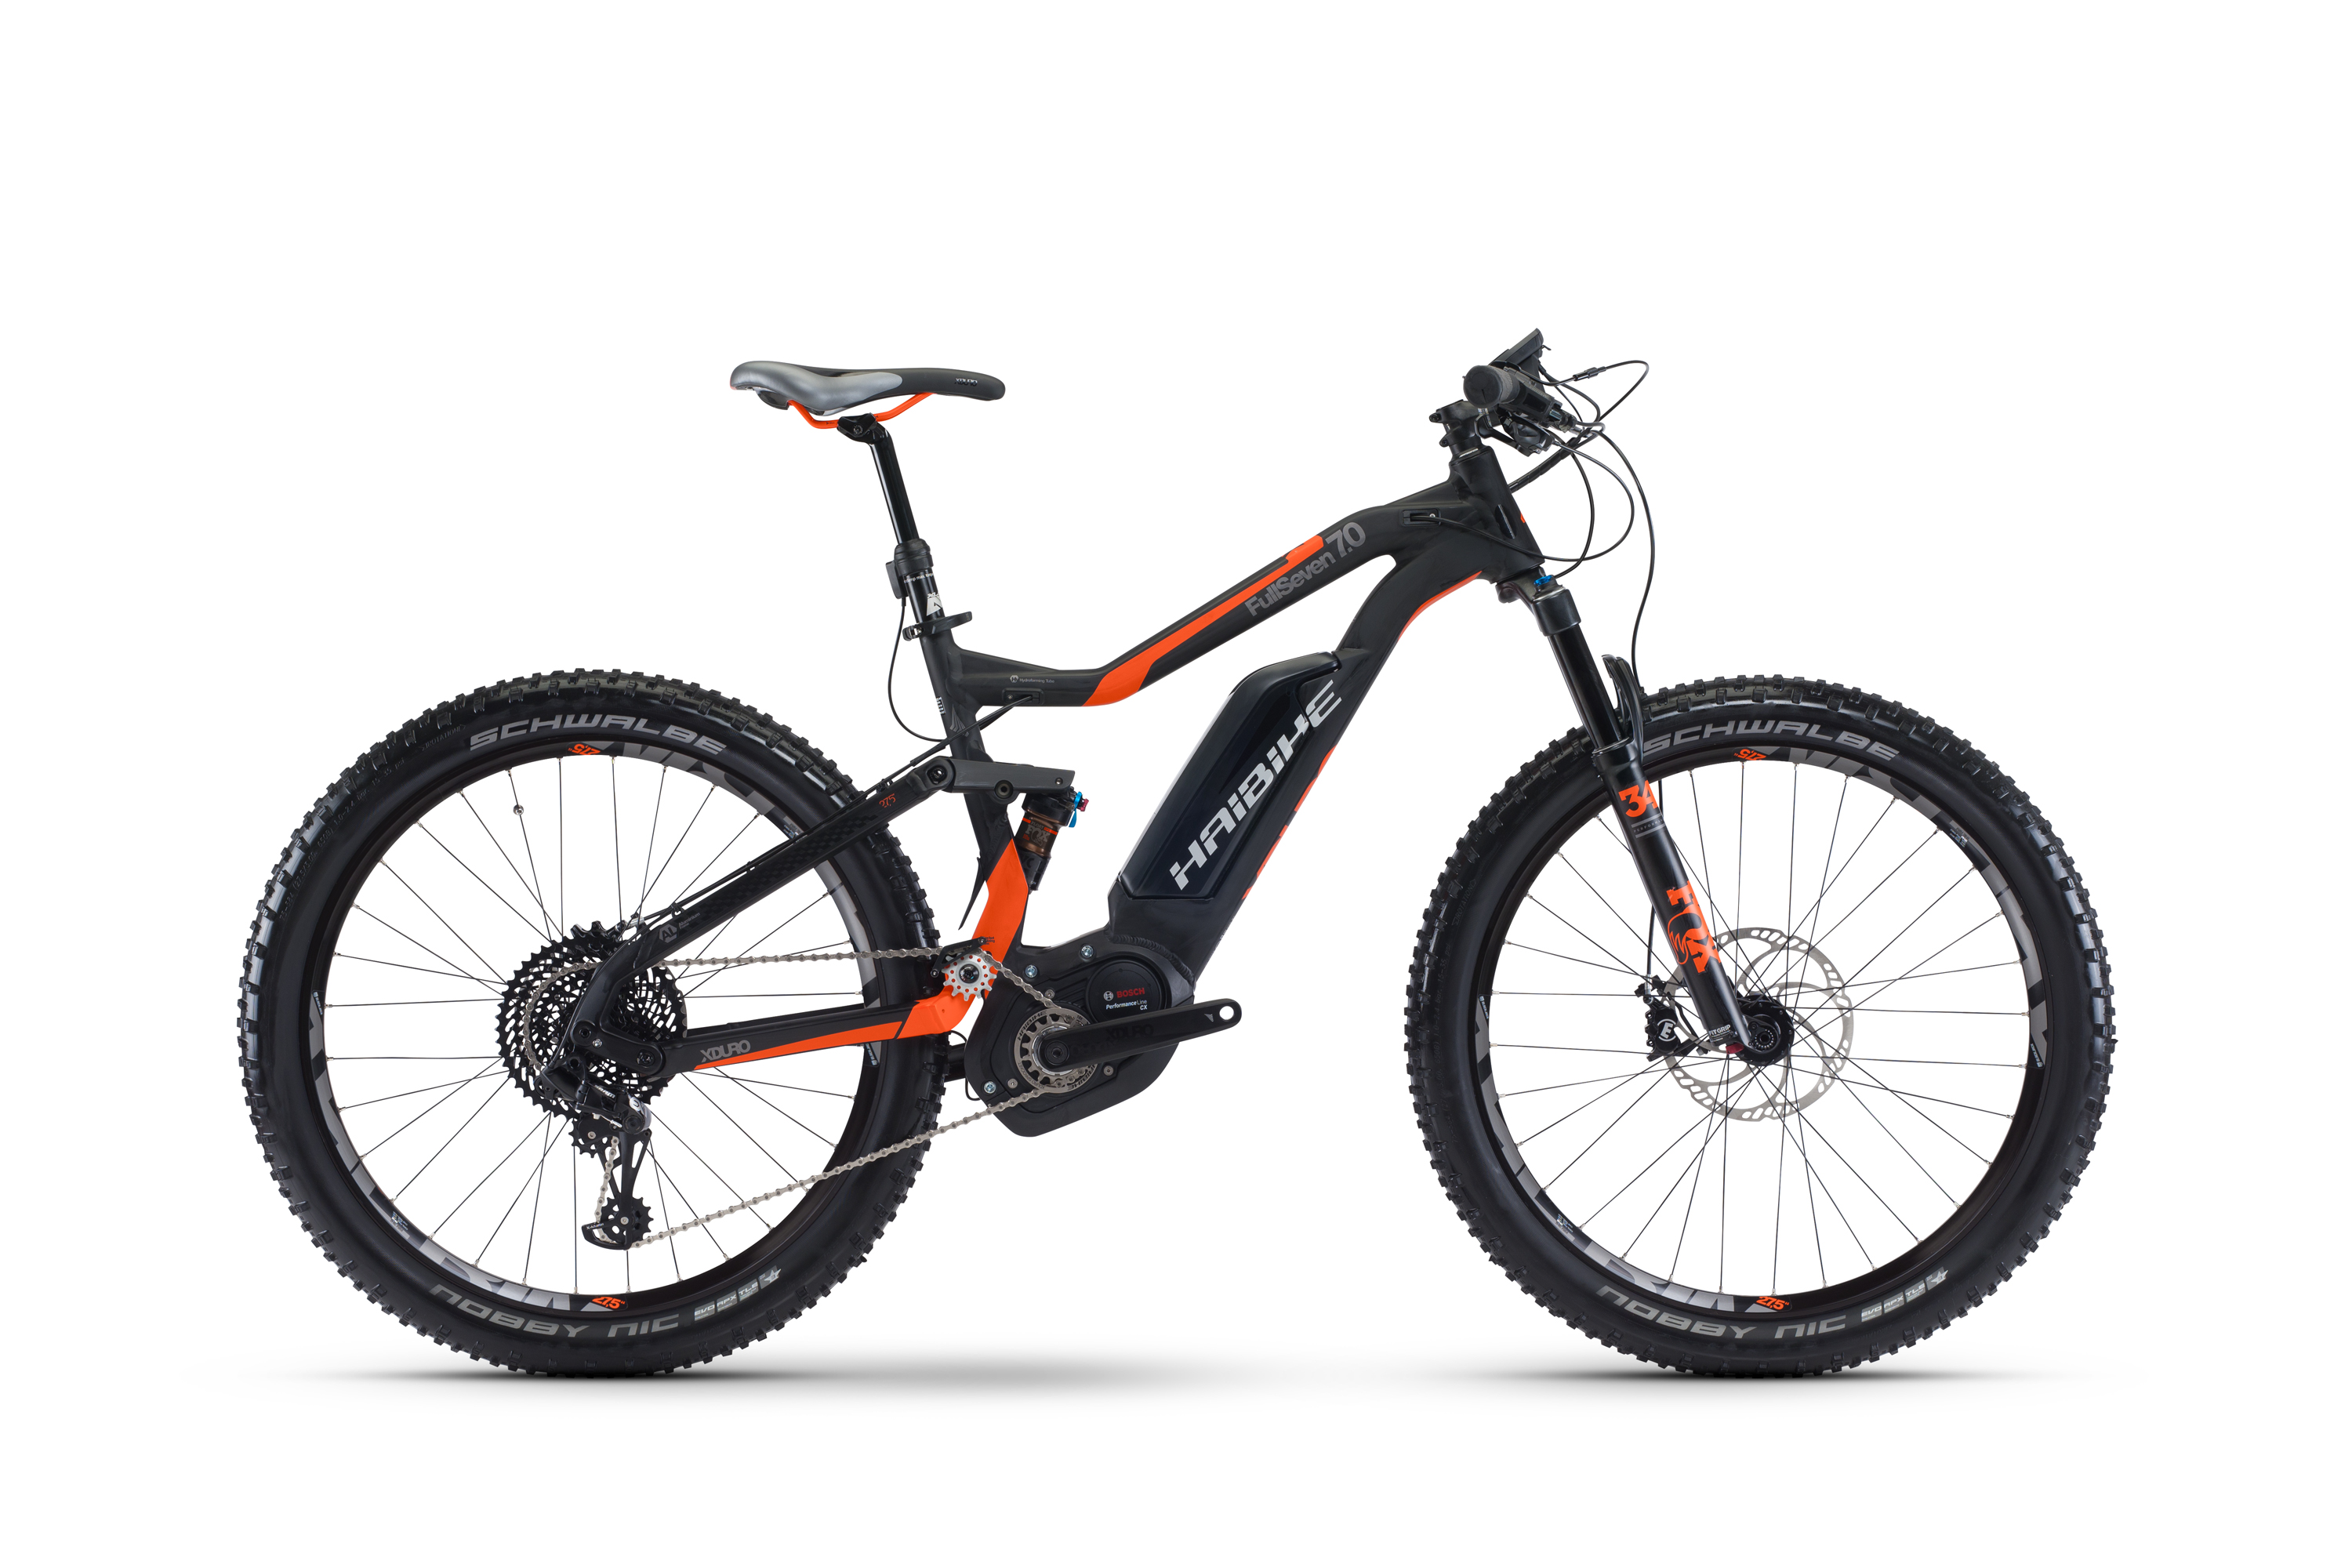 haibike xduro fullseven 7 0 bike bike. Black Bedroom Furniture Sets. Home Design Ideas